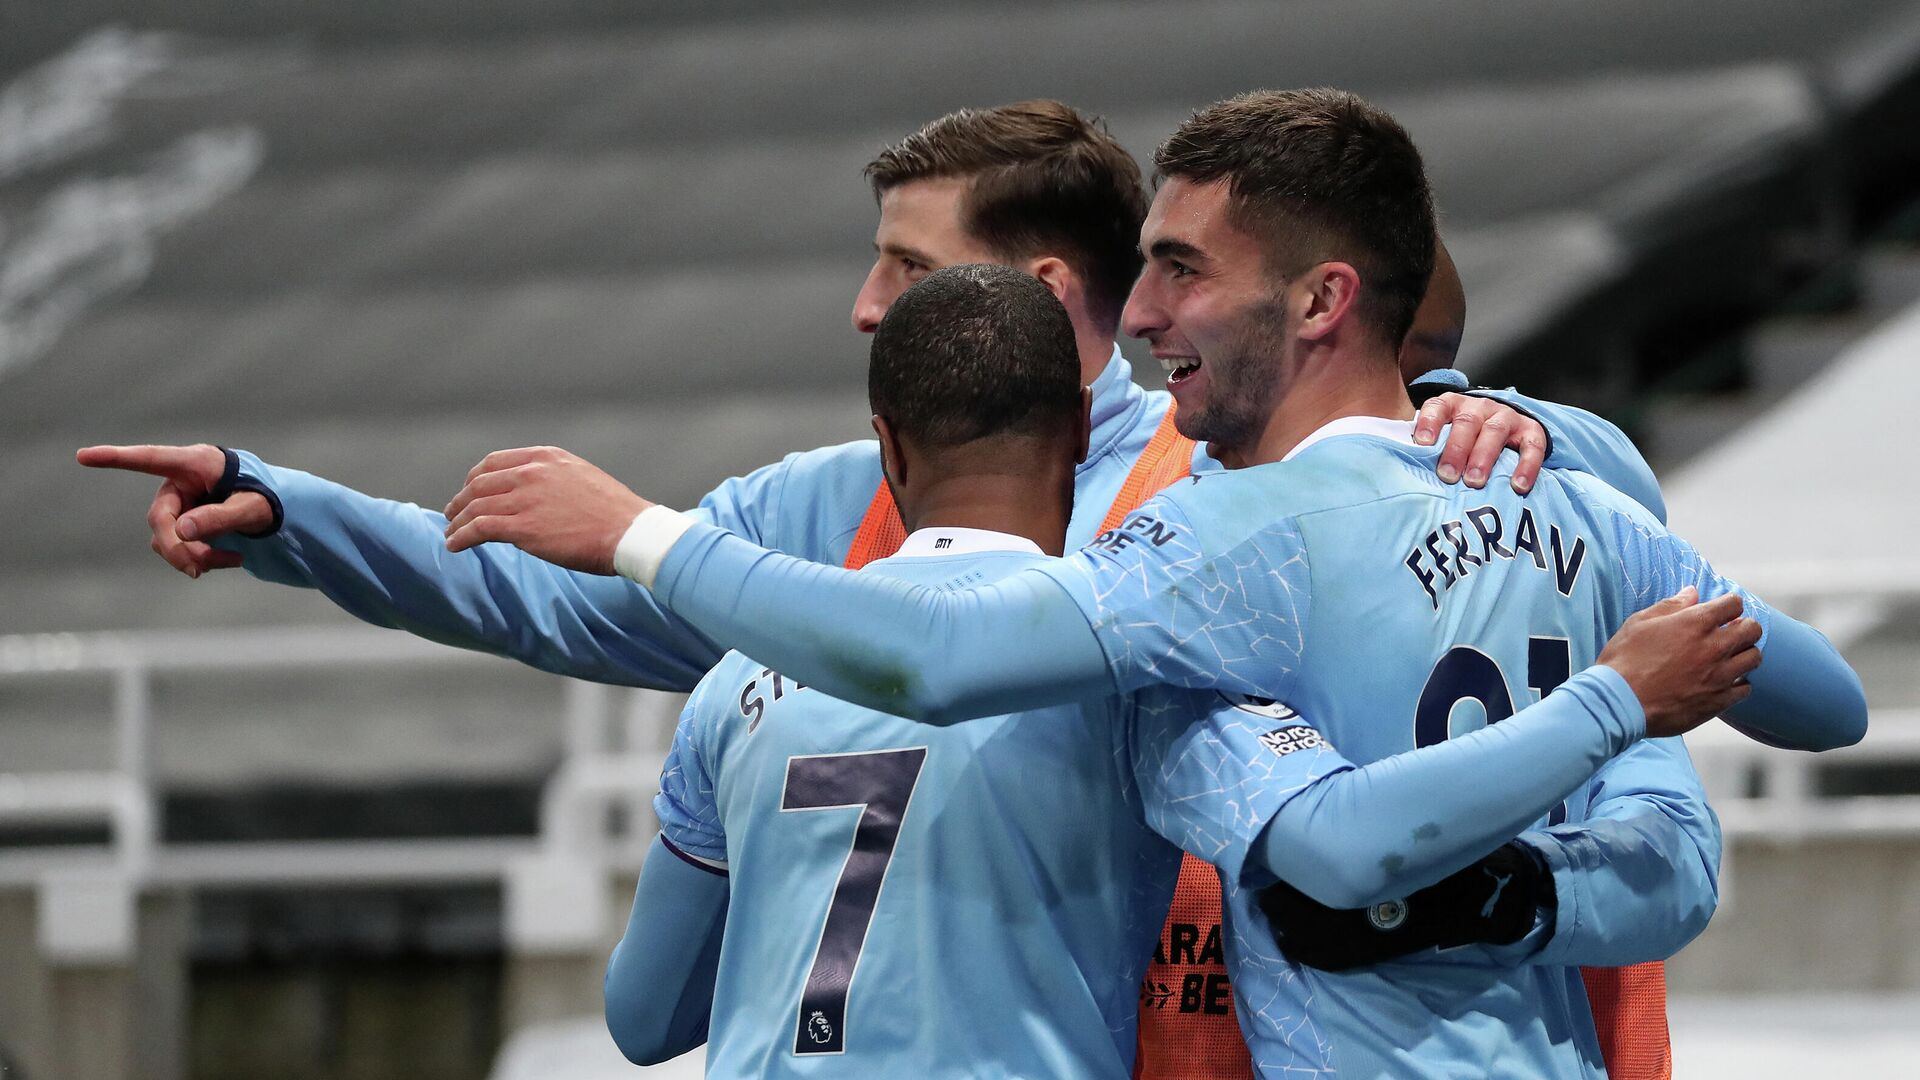 Manchester City's Spanish midfielder Ferran Torres (R) celebrates scoring his team's fourth goal, his third, during the English Premier League football match between Newcastle United and Manchester City at St James' Park in Newcastle-upon-Tyne, north east England on May 14, 2021. (Photo by SCOTT HEPPELL / POOL / AFP) / RESTRICTED TO EDITORIAL USE. No use with unauthorized audio, video, data, fixture lists, club/league logos or 'live' services. Online in-match use limited to 120 images. An additional 40 images may be used in extra time. No video emulation. Social media in-match use limited to 120 images. An additional 40 images may be used in extra time. No use in betting publications, games or single club/league/player publications. /  - РИА Новости, 1920, 15.05.2021